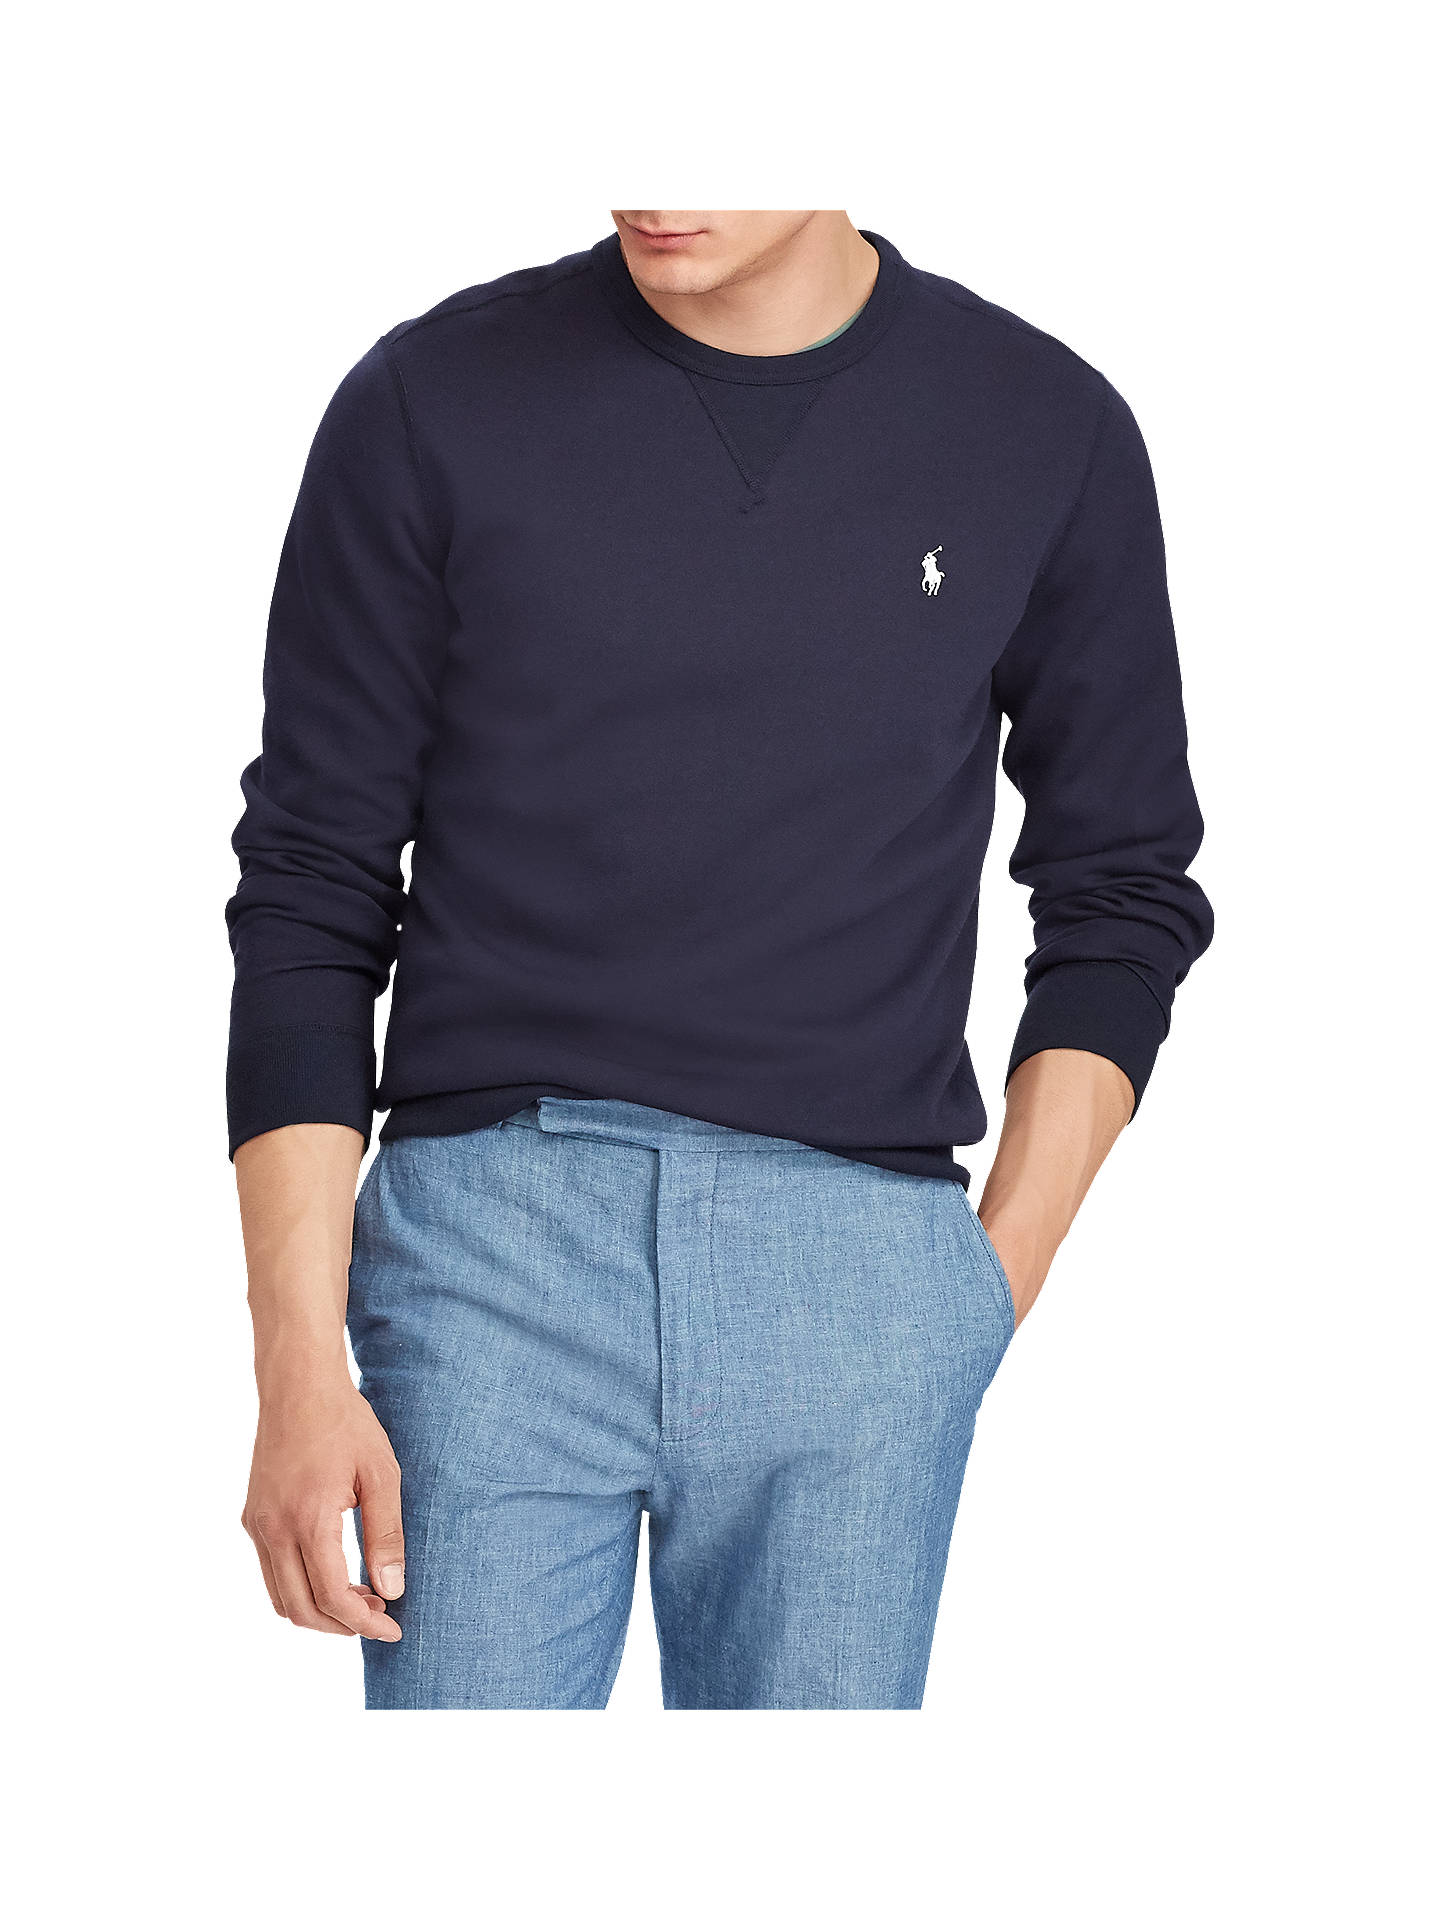 04834f77c Buy Polo Ralph Lauren Double Knit Sweatshirt, Aviator Navy, M Online at  johnlewis.